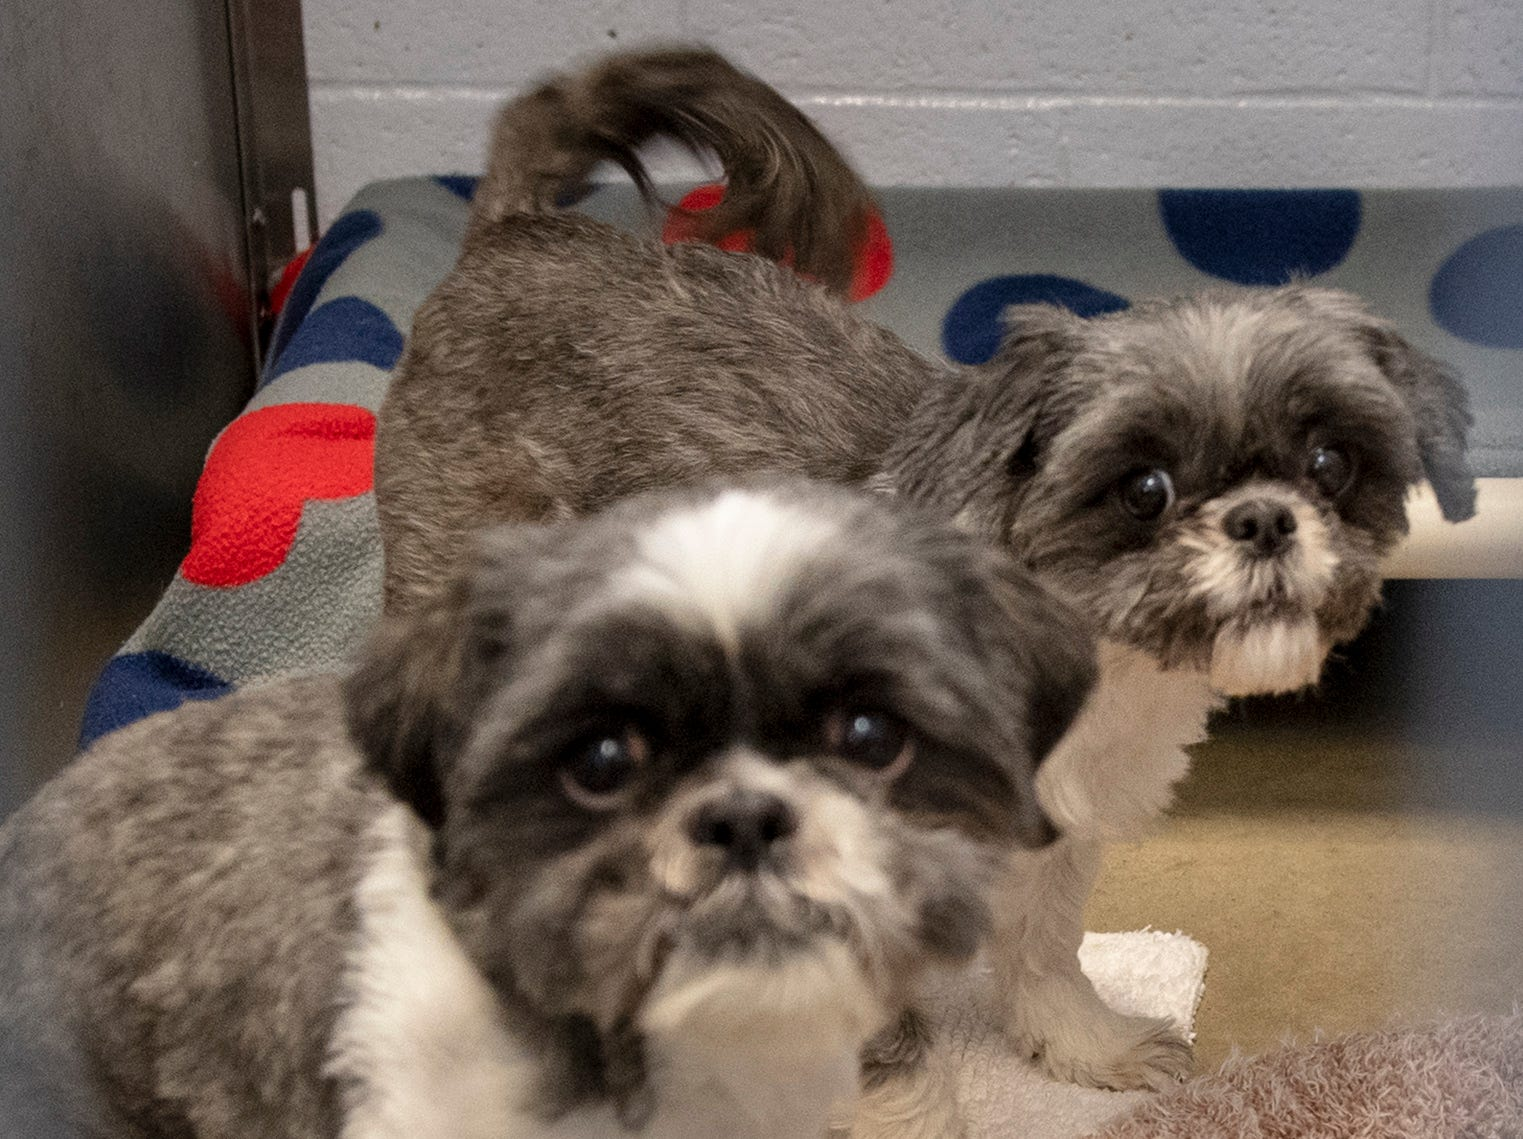 We are a pair of 4 year-old Shih-Tzus We were brought to the York County SPCA because our owner developed health problems and can no longer care for us. Sammy lived with dogs and kids and did really well. He is a little shy at first and is pretty low energy and would prefer to lounge around. The same for Annie with kids and dogs, neither has lived with carts. Annie is a lap loving affectionate dog looking for a home that can provide her with endless attention.